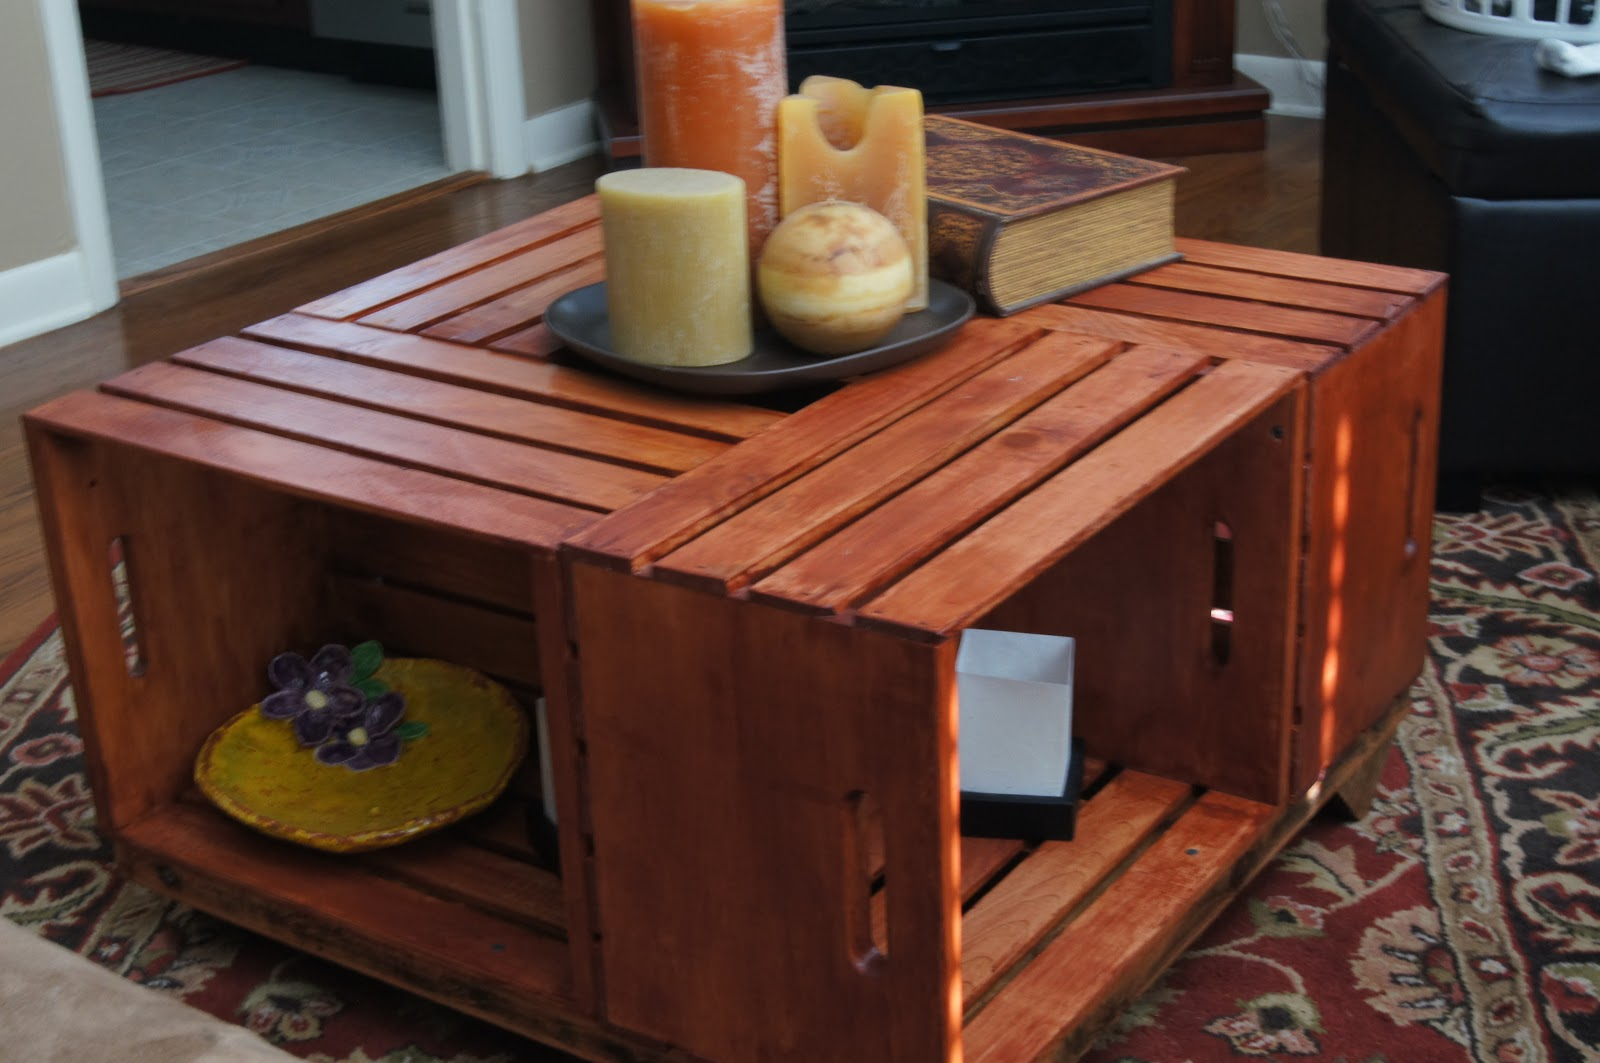 diy wooden crate coffee table | Quick Woodworking Projects